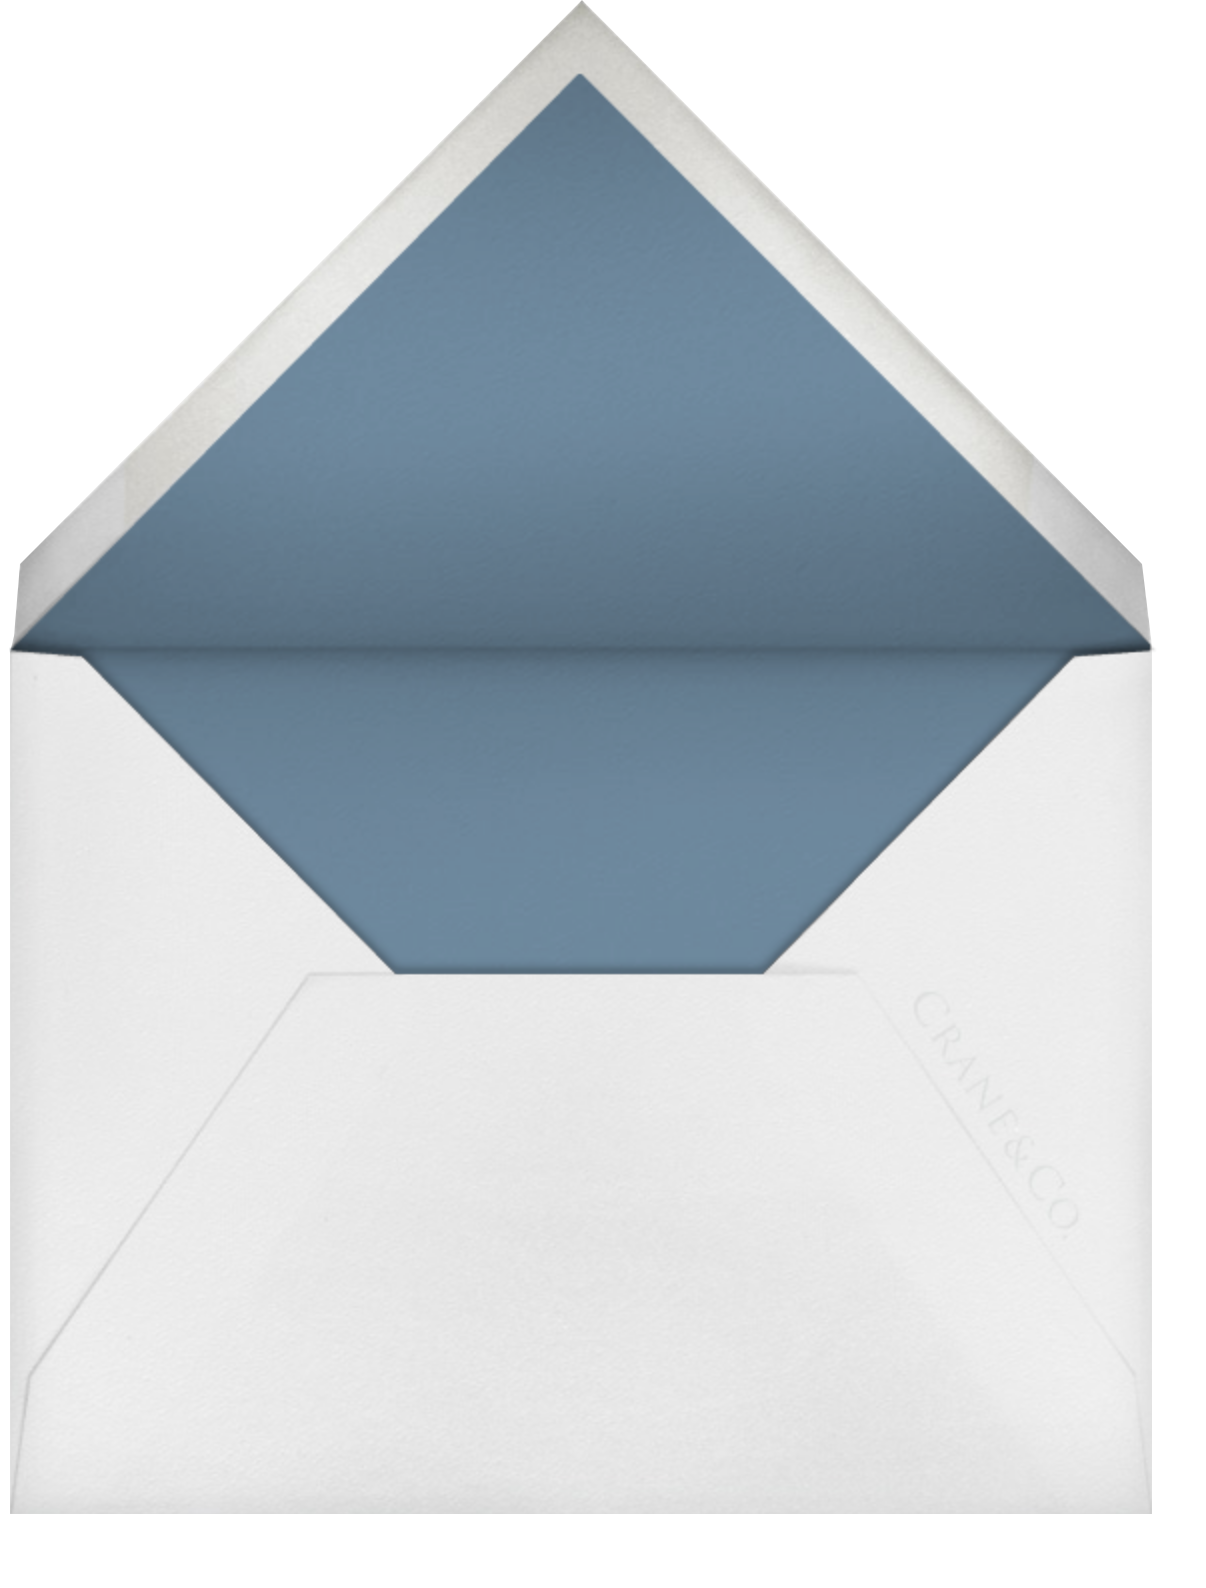 Newport - Navy - Paperless Post - Personalized stationery - envelope back